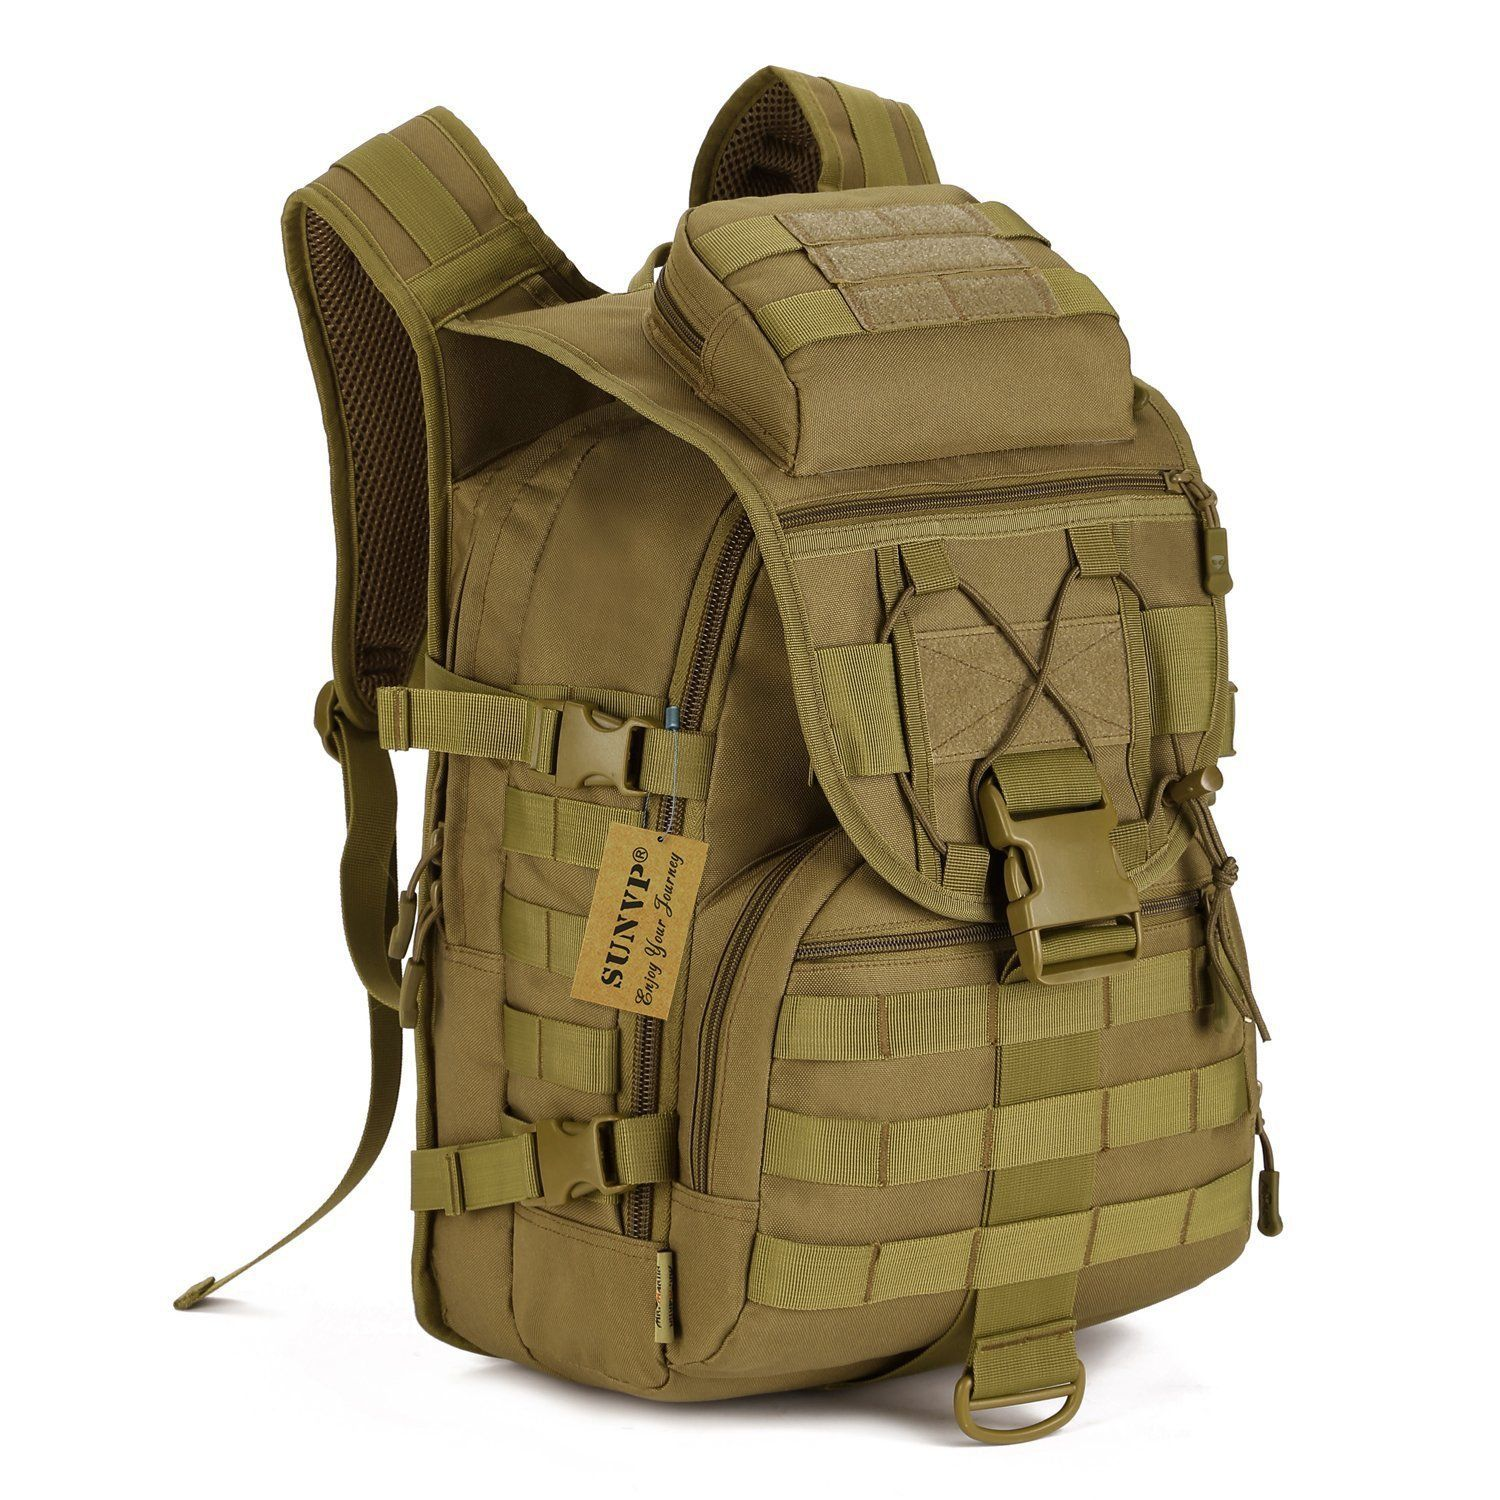 Protector Plus Tactical MOLLE Assault Backpack Pack Military Gear ...